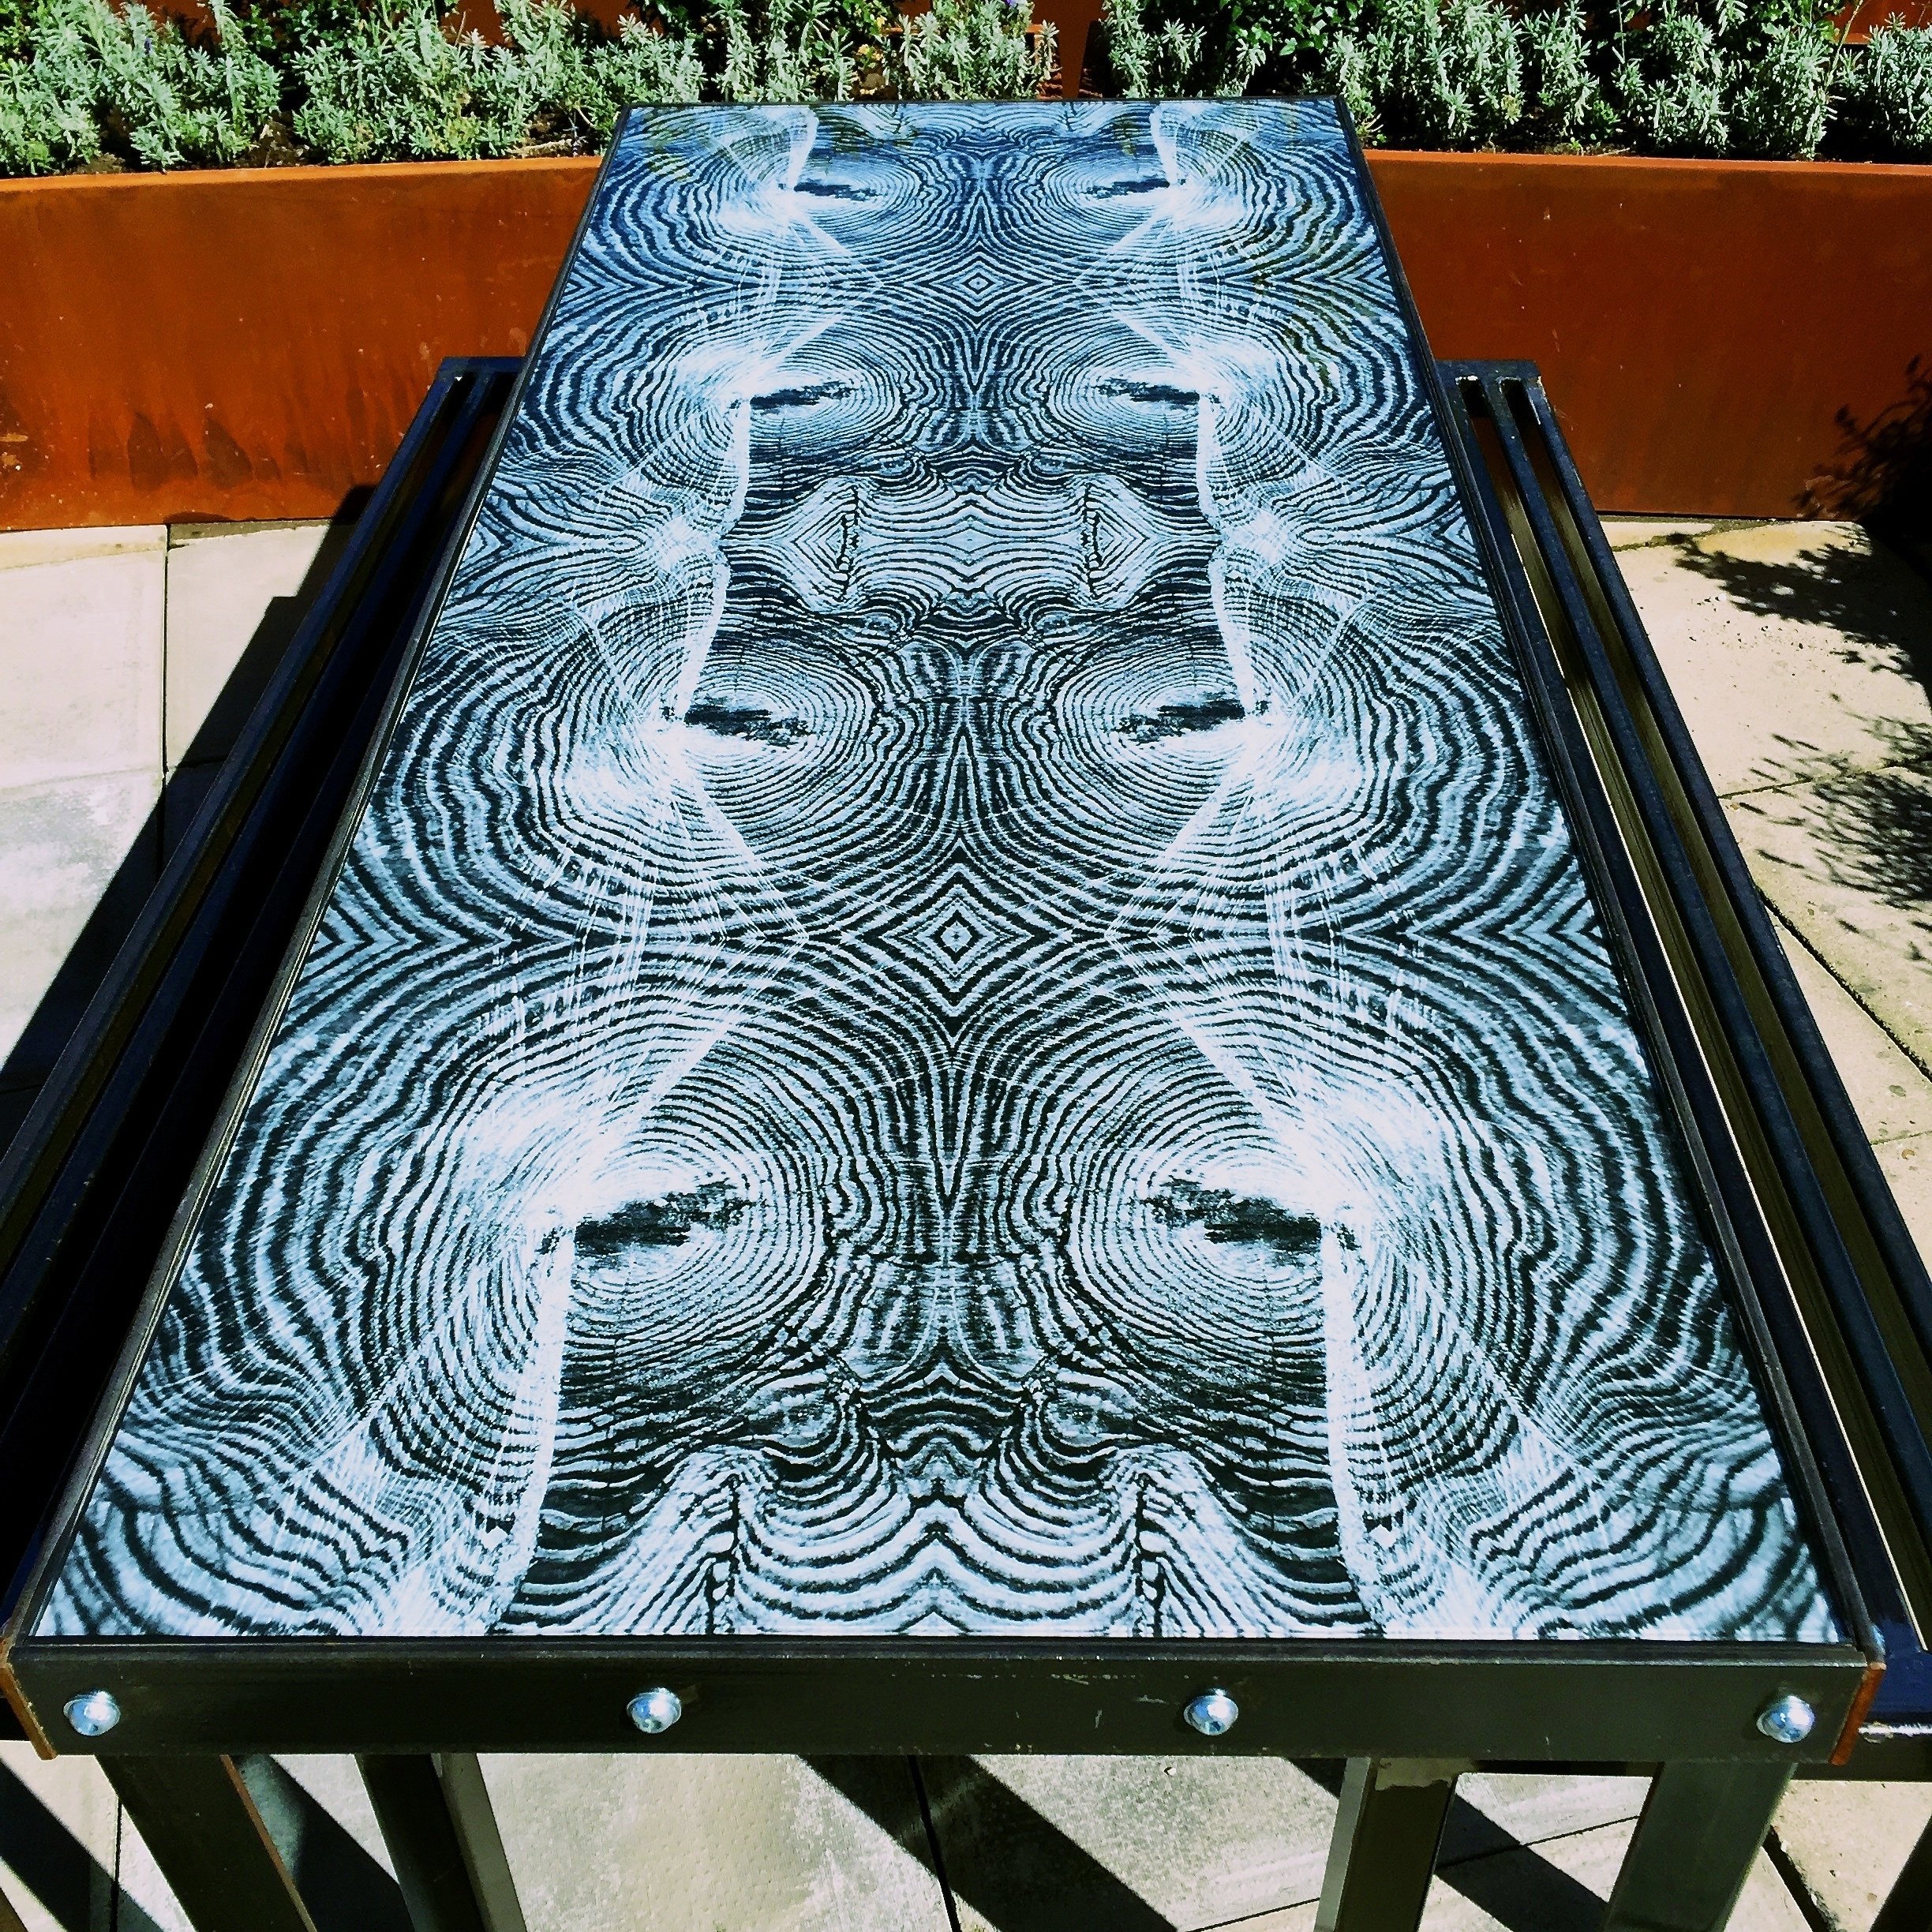 BBC Worldwide Glass Table designed by John Rose